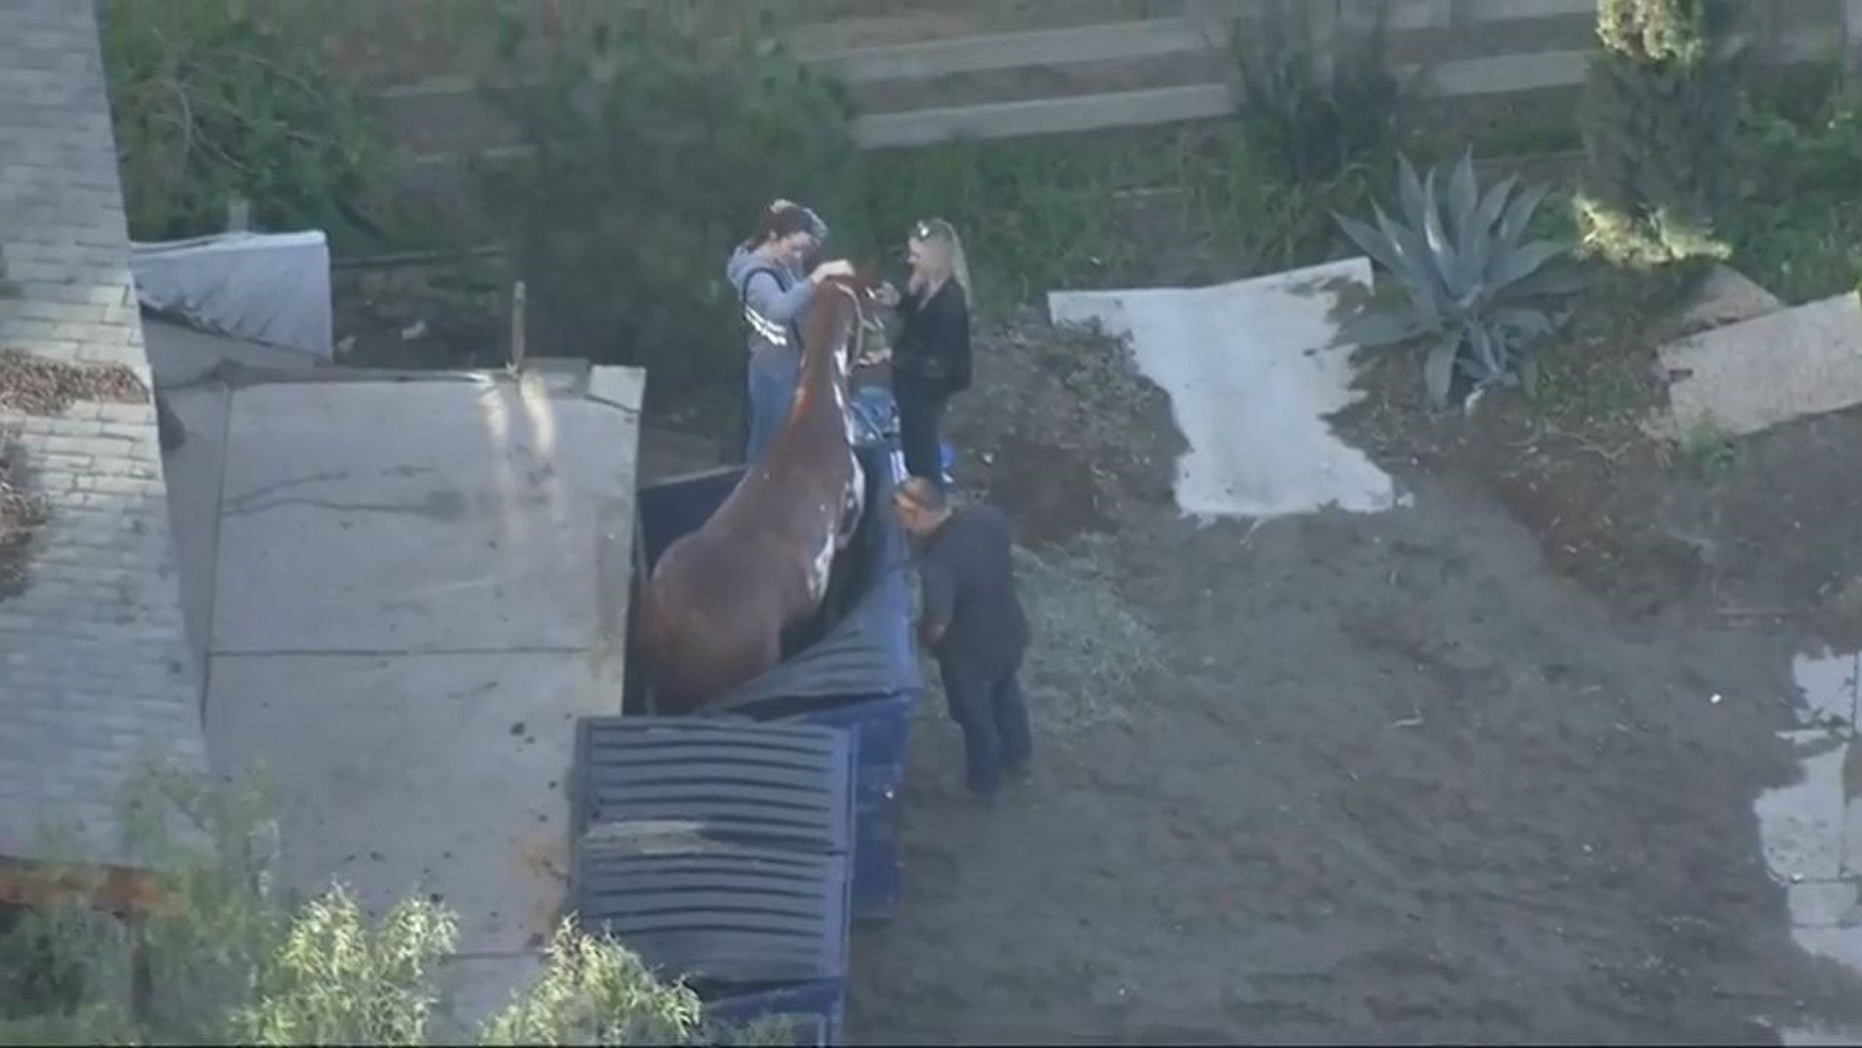 A horse was rescued after getting trapped in a dumpster in California on Friday.